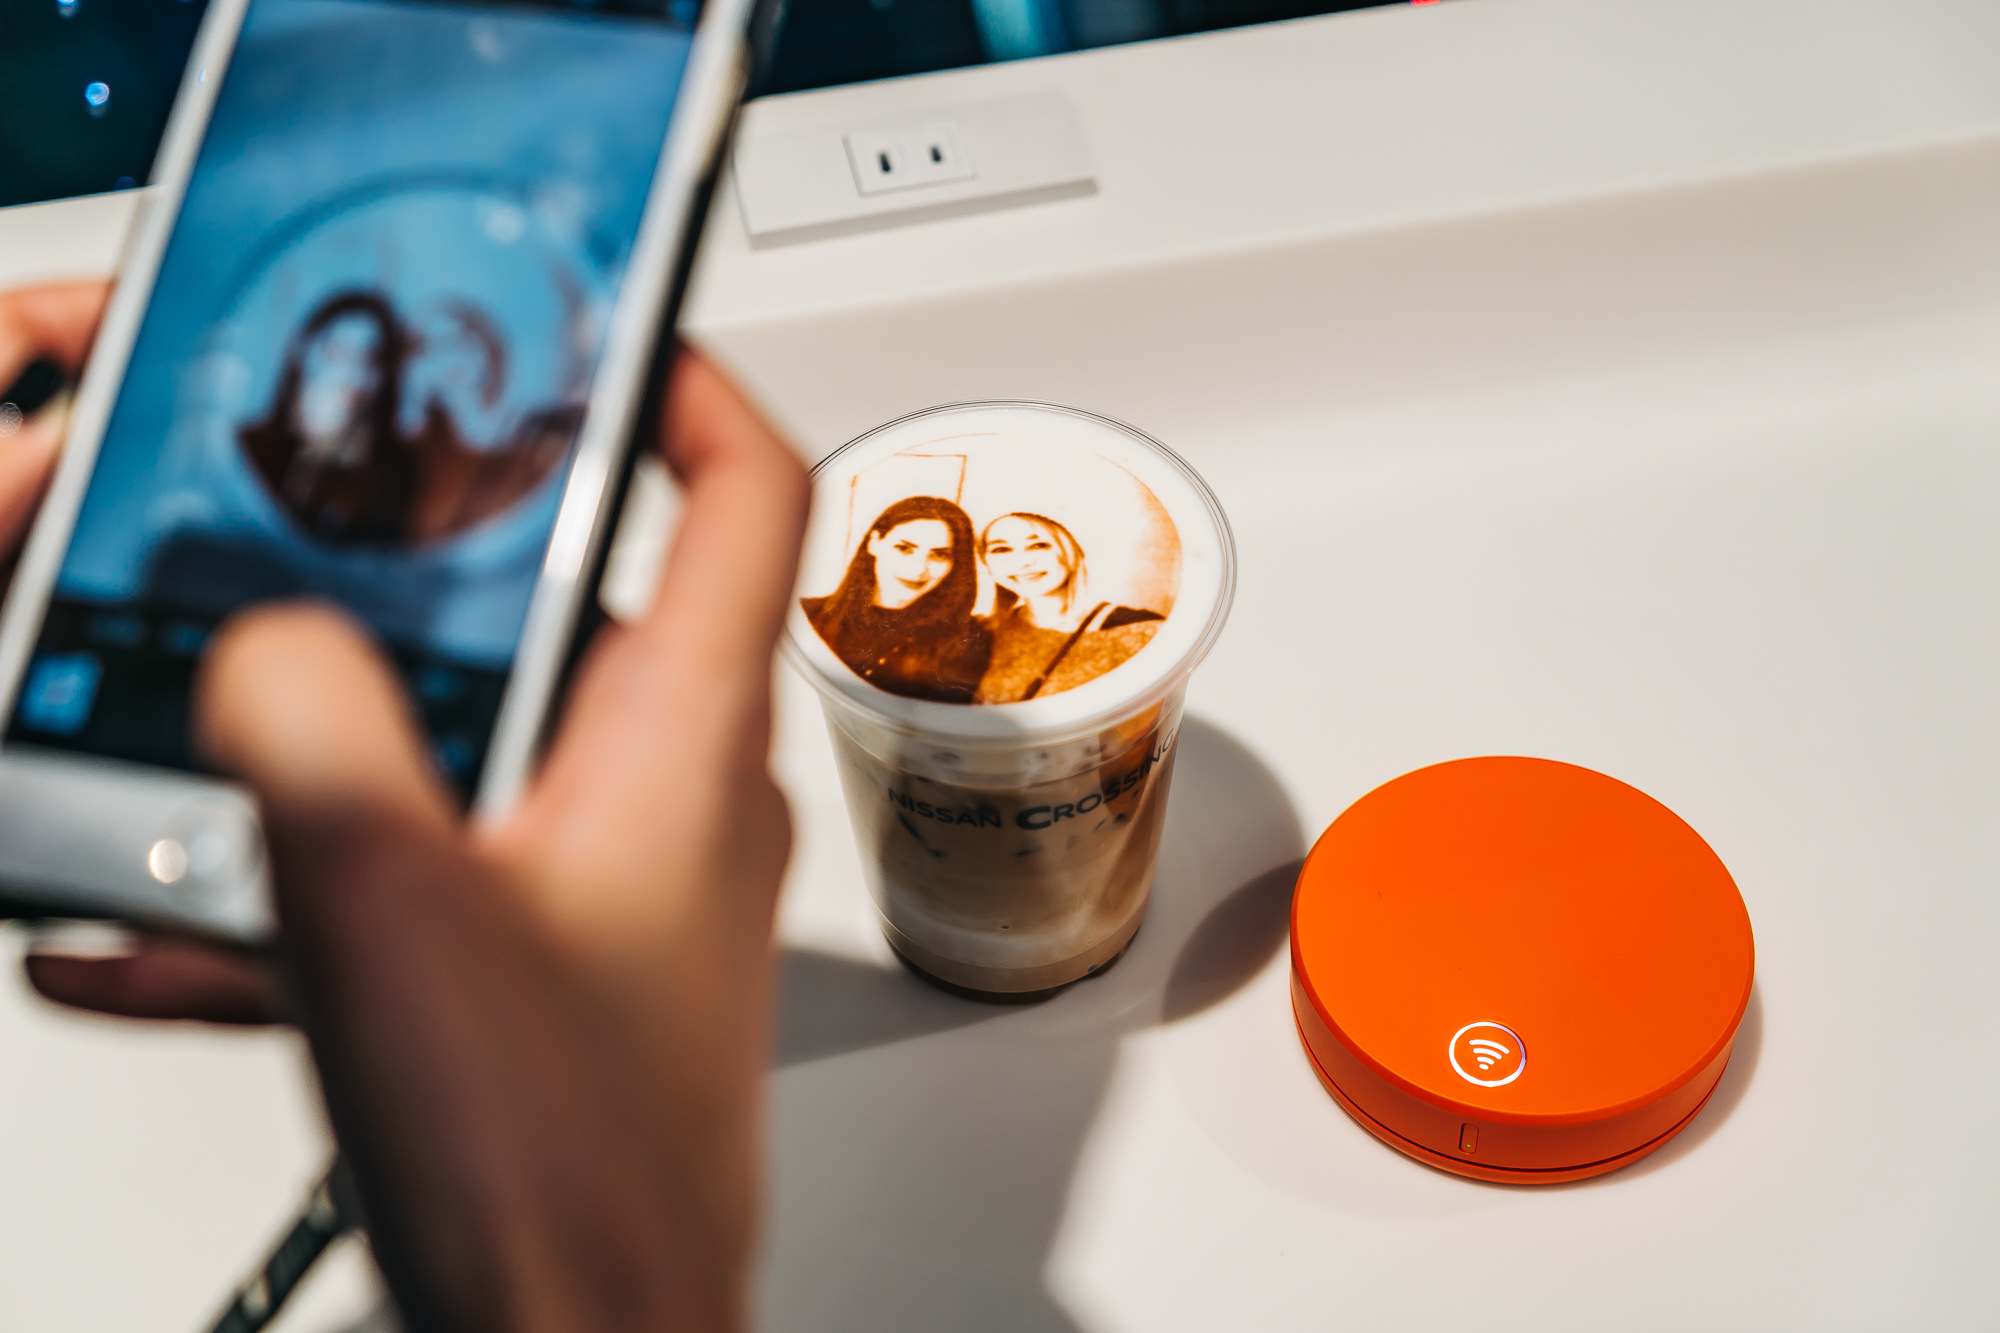 Uploading our cool 2D coffee art using our Skyroam Solis